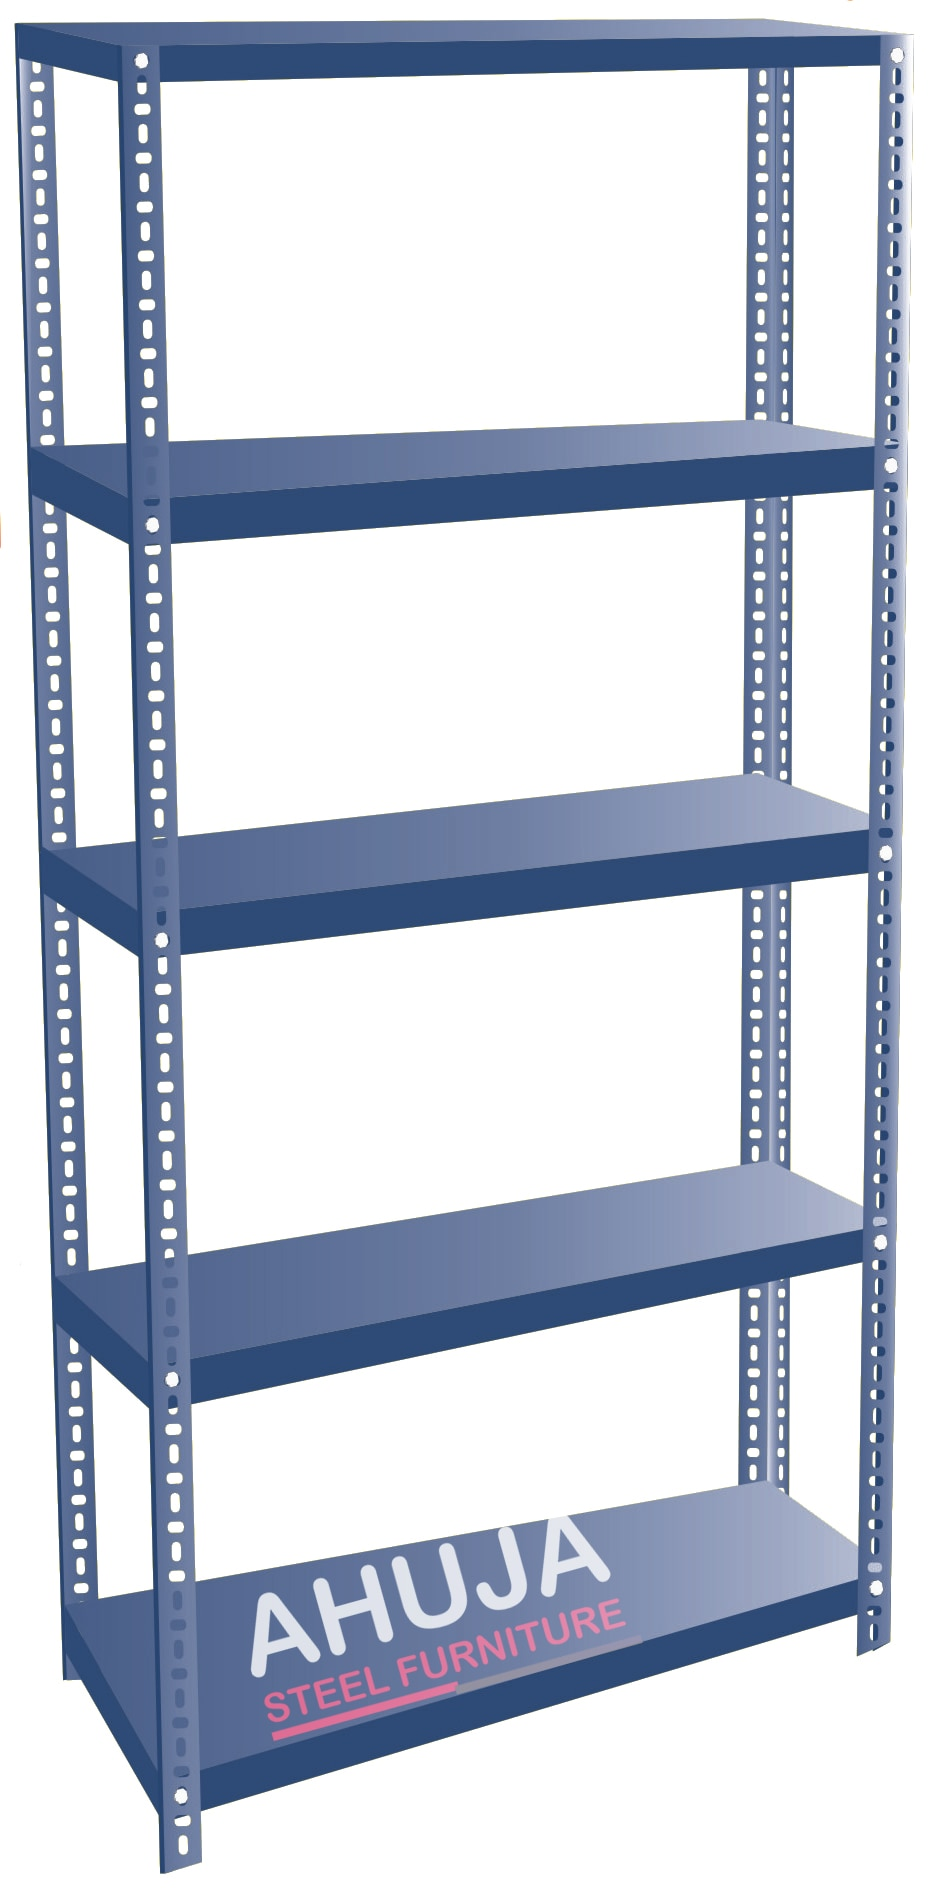 slotted angle racks in delhi  slotted angle racks used in warehouses